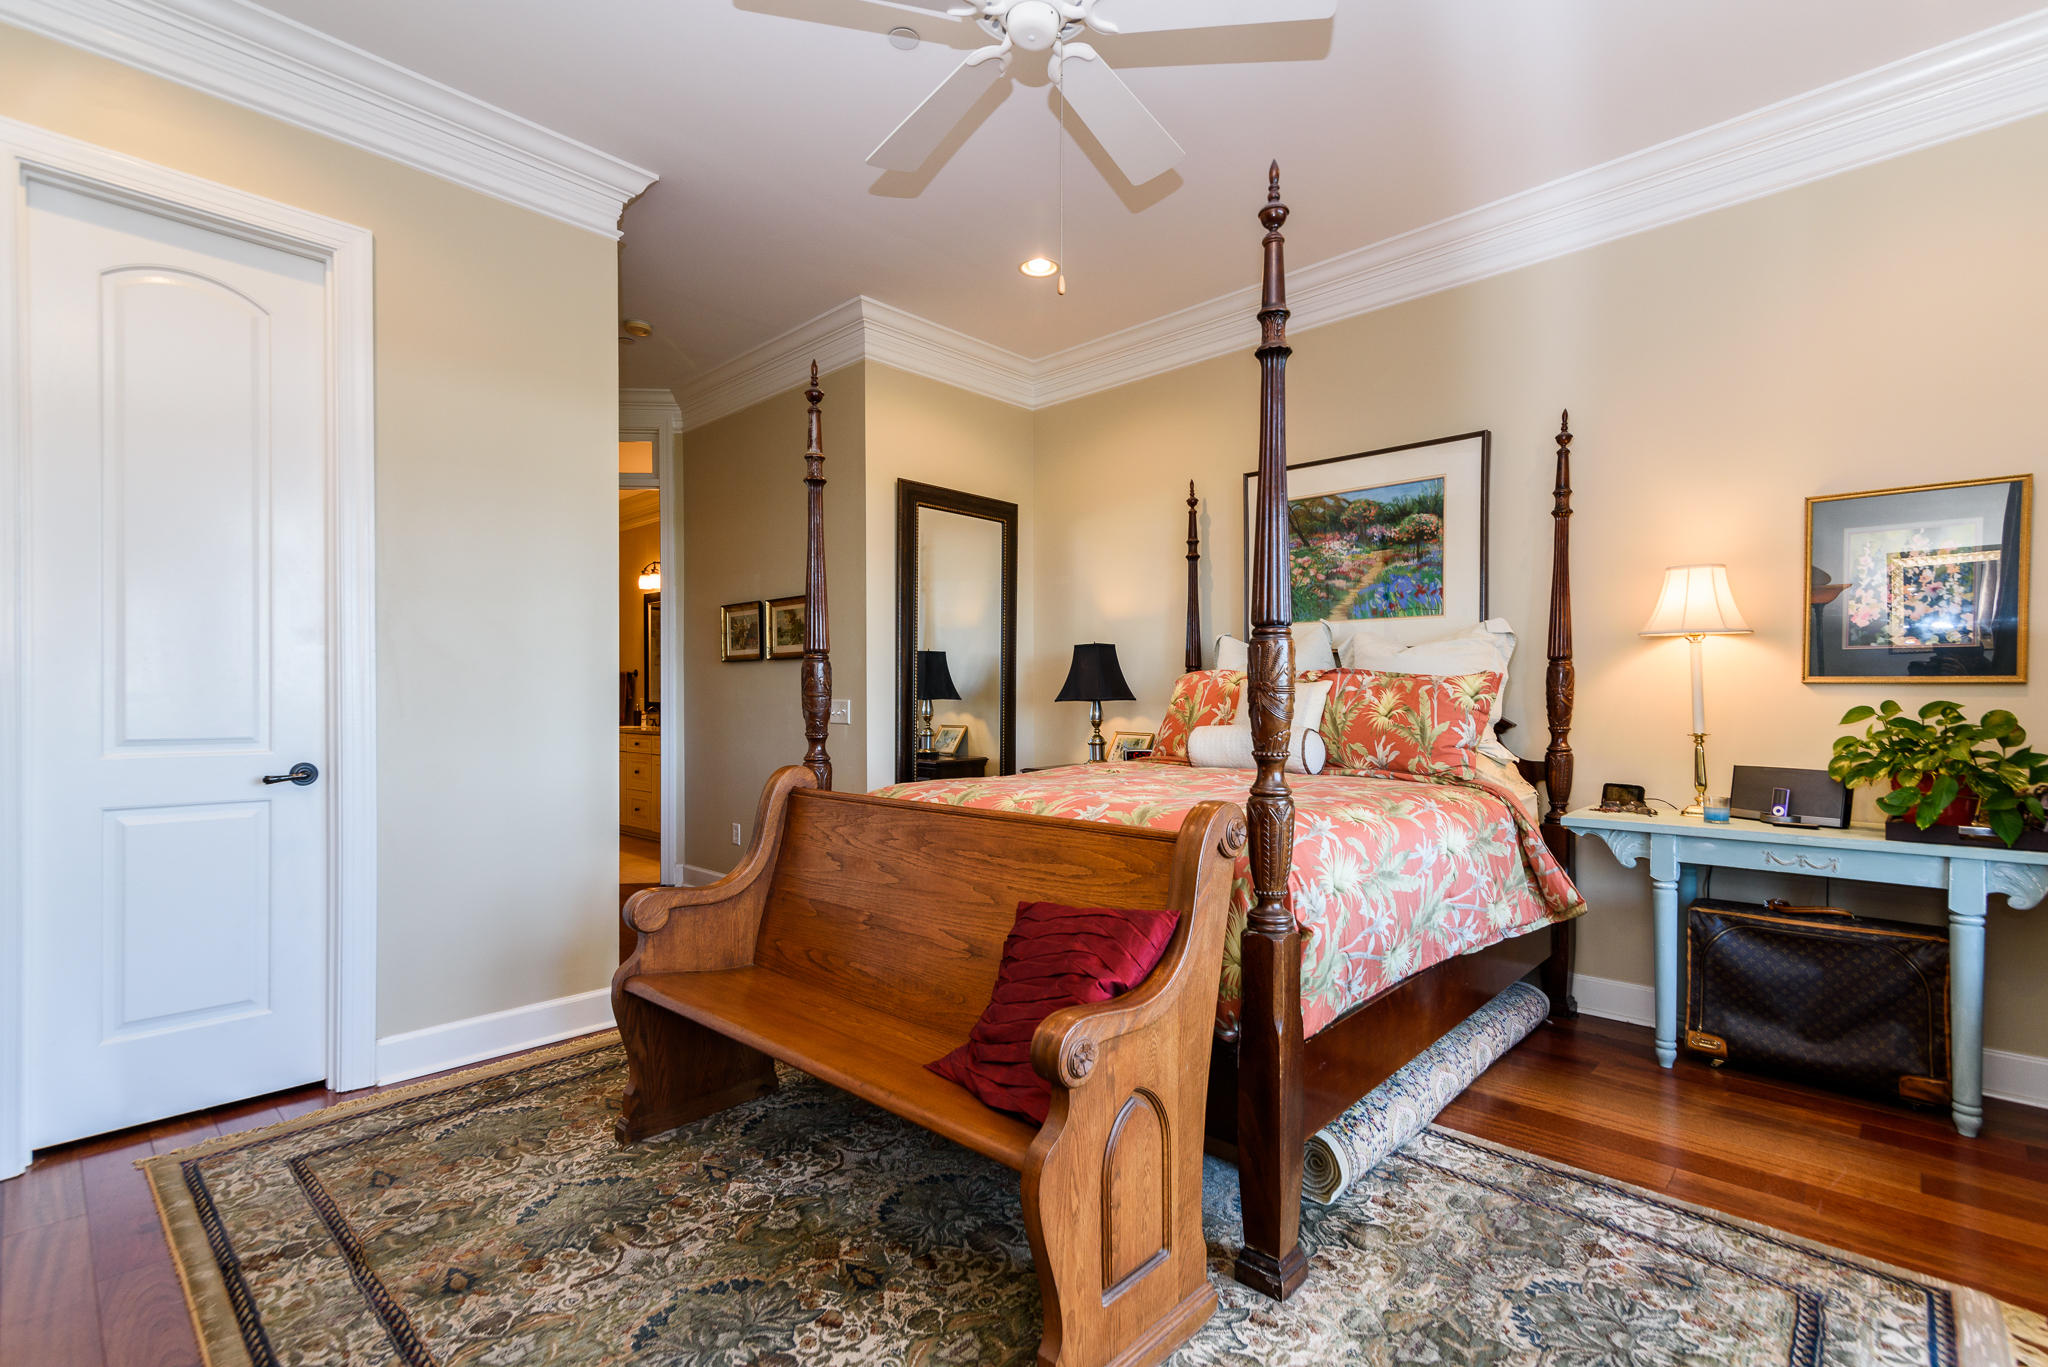 Sawyer's Landing Homes For Sale - 977 Cove Bay, Mount Pleasant, SC - 20